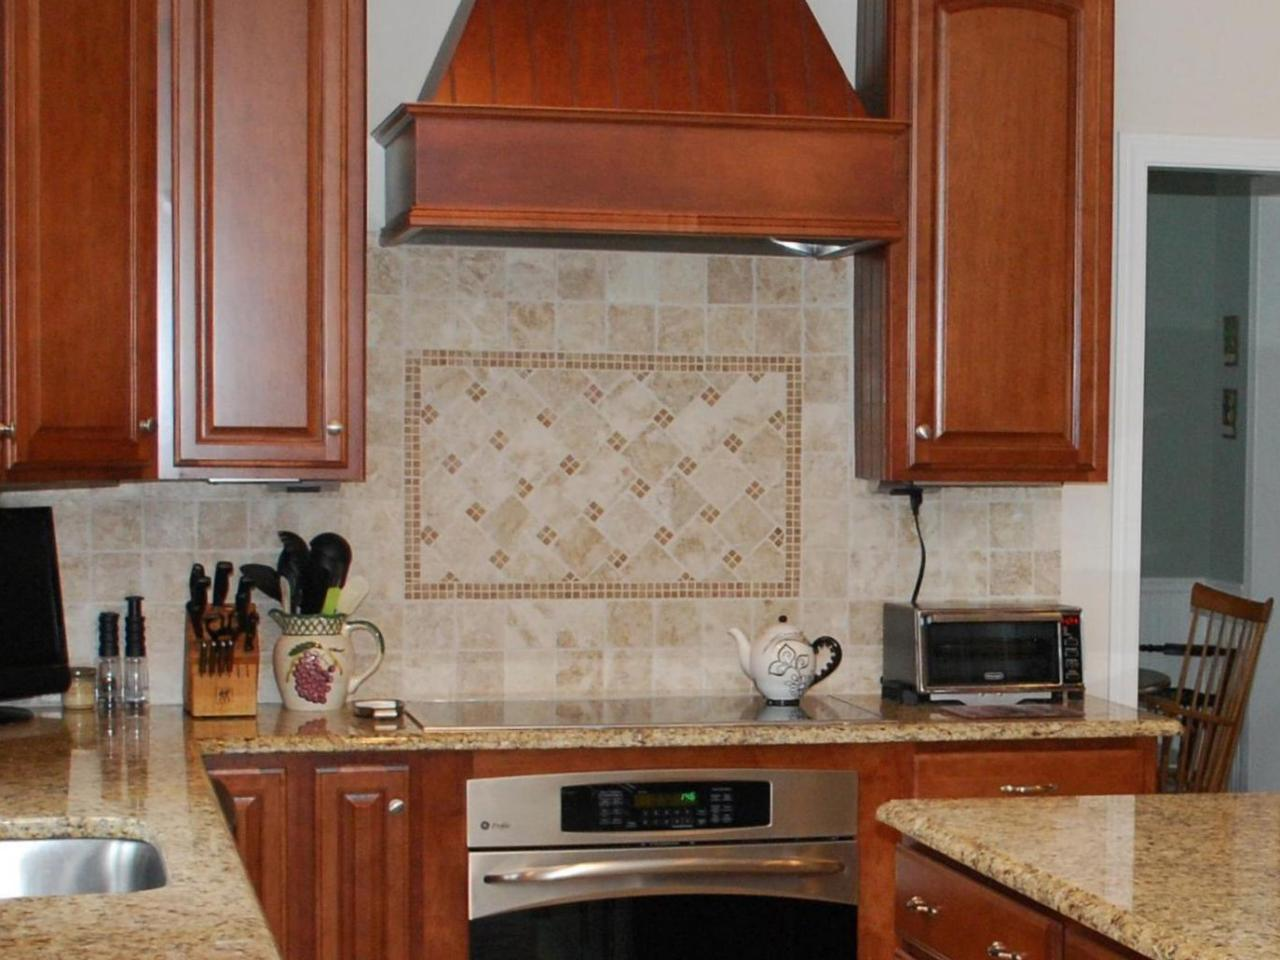 Travertine Stone Backsplash : Travertine backsplashes hgtv